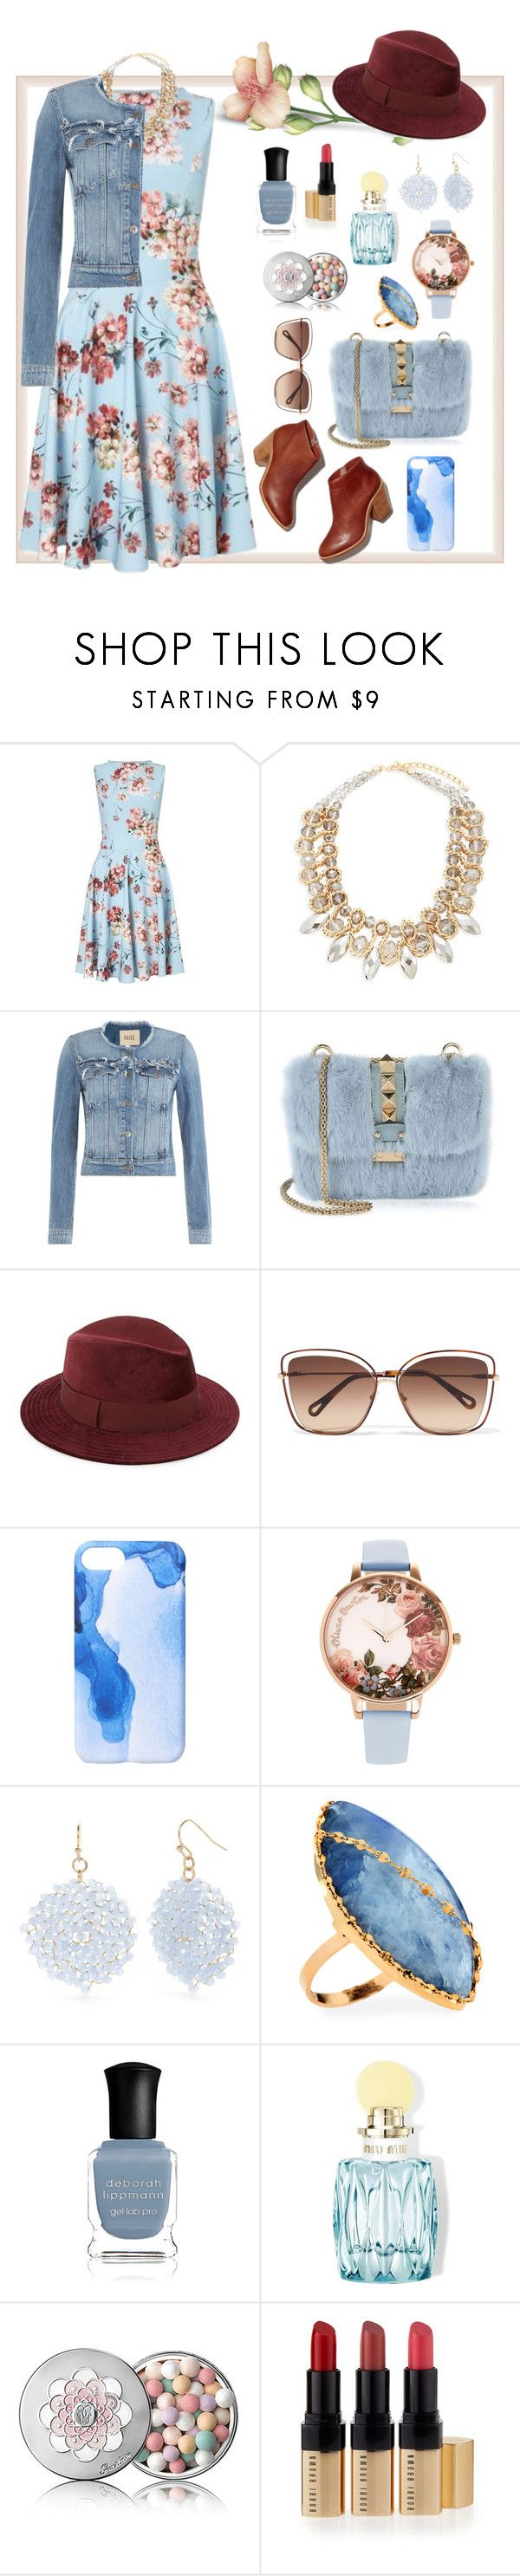 """Florals"" by babykiya786 ❤ liked on Polyvore featuring Miss Selfridge, Saks Fifth Avenue, Paige Denim, Valentino, Chloé, Ankit, Olivia Burton, New Directions, Lana and Deborah Lippmann"